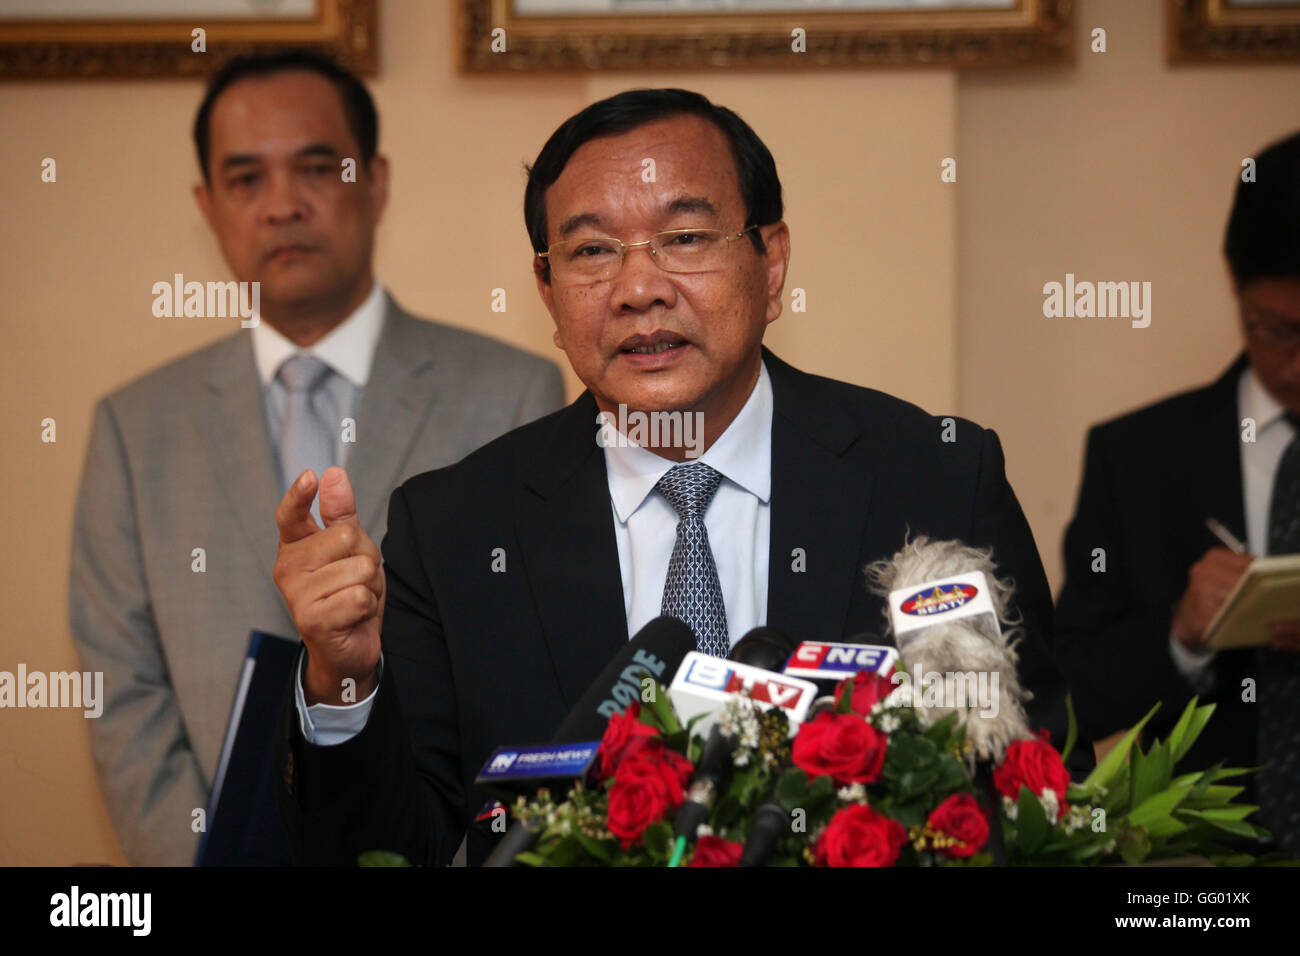 (160802) -- PHNOM PENH, Aug. 2, 2016 (Xinhua) -- Cambodian Foreign Minister Prak Sokhonn speaks during a press conference - Stock Image